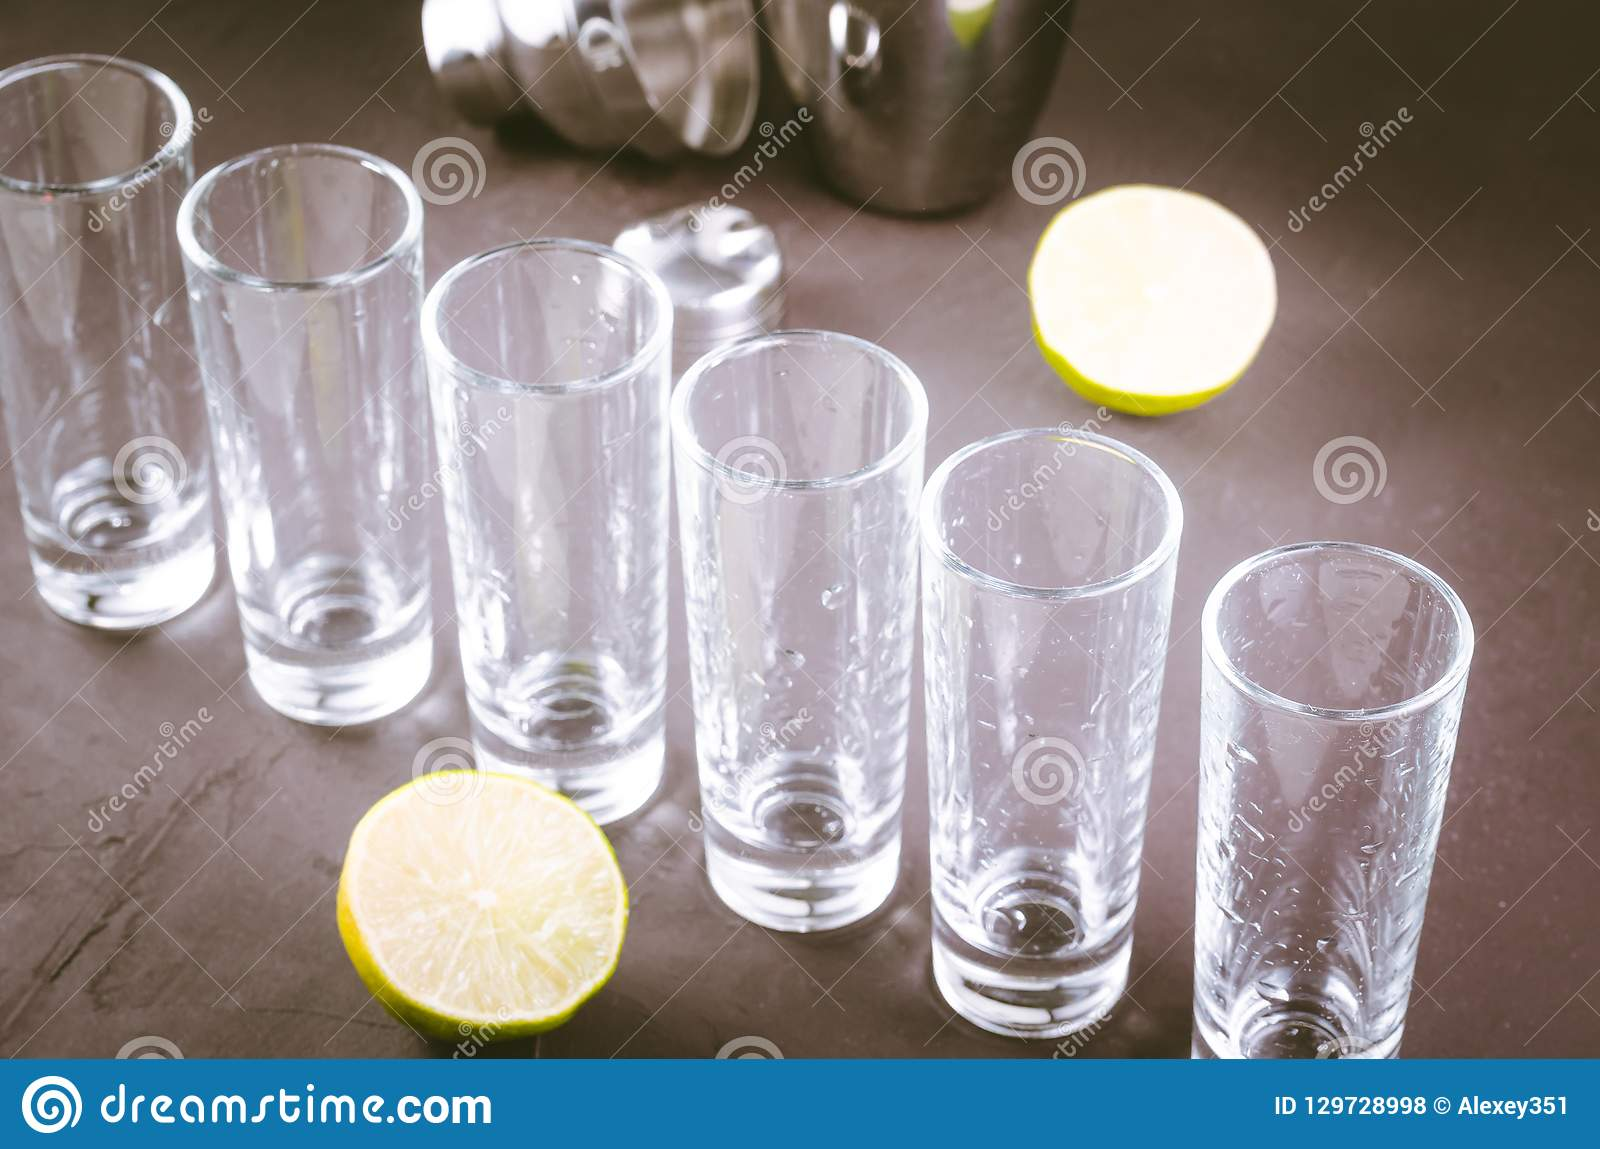 Shots ready for alcohol on bar/shots ready for alcohol and lime